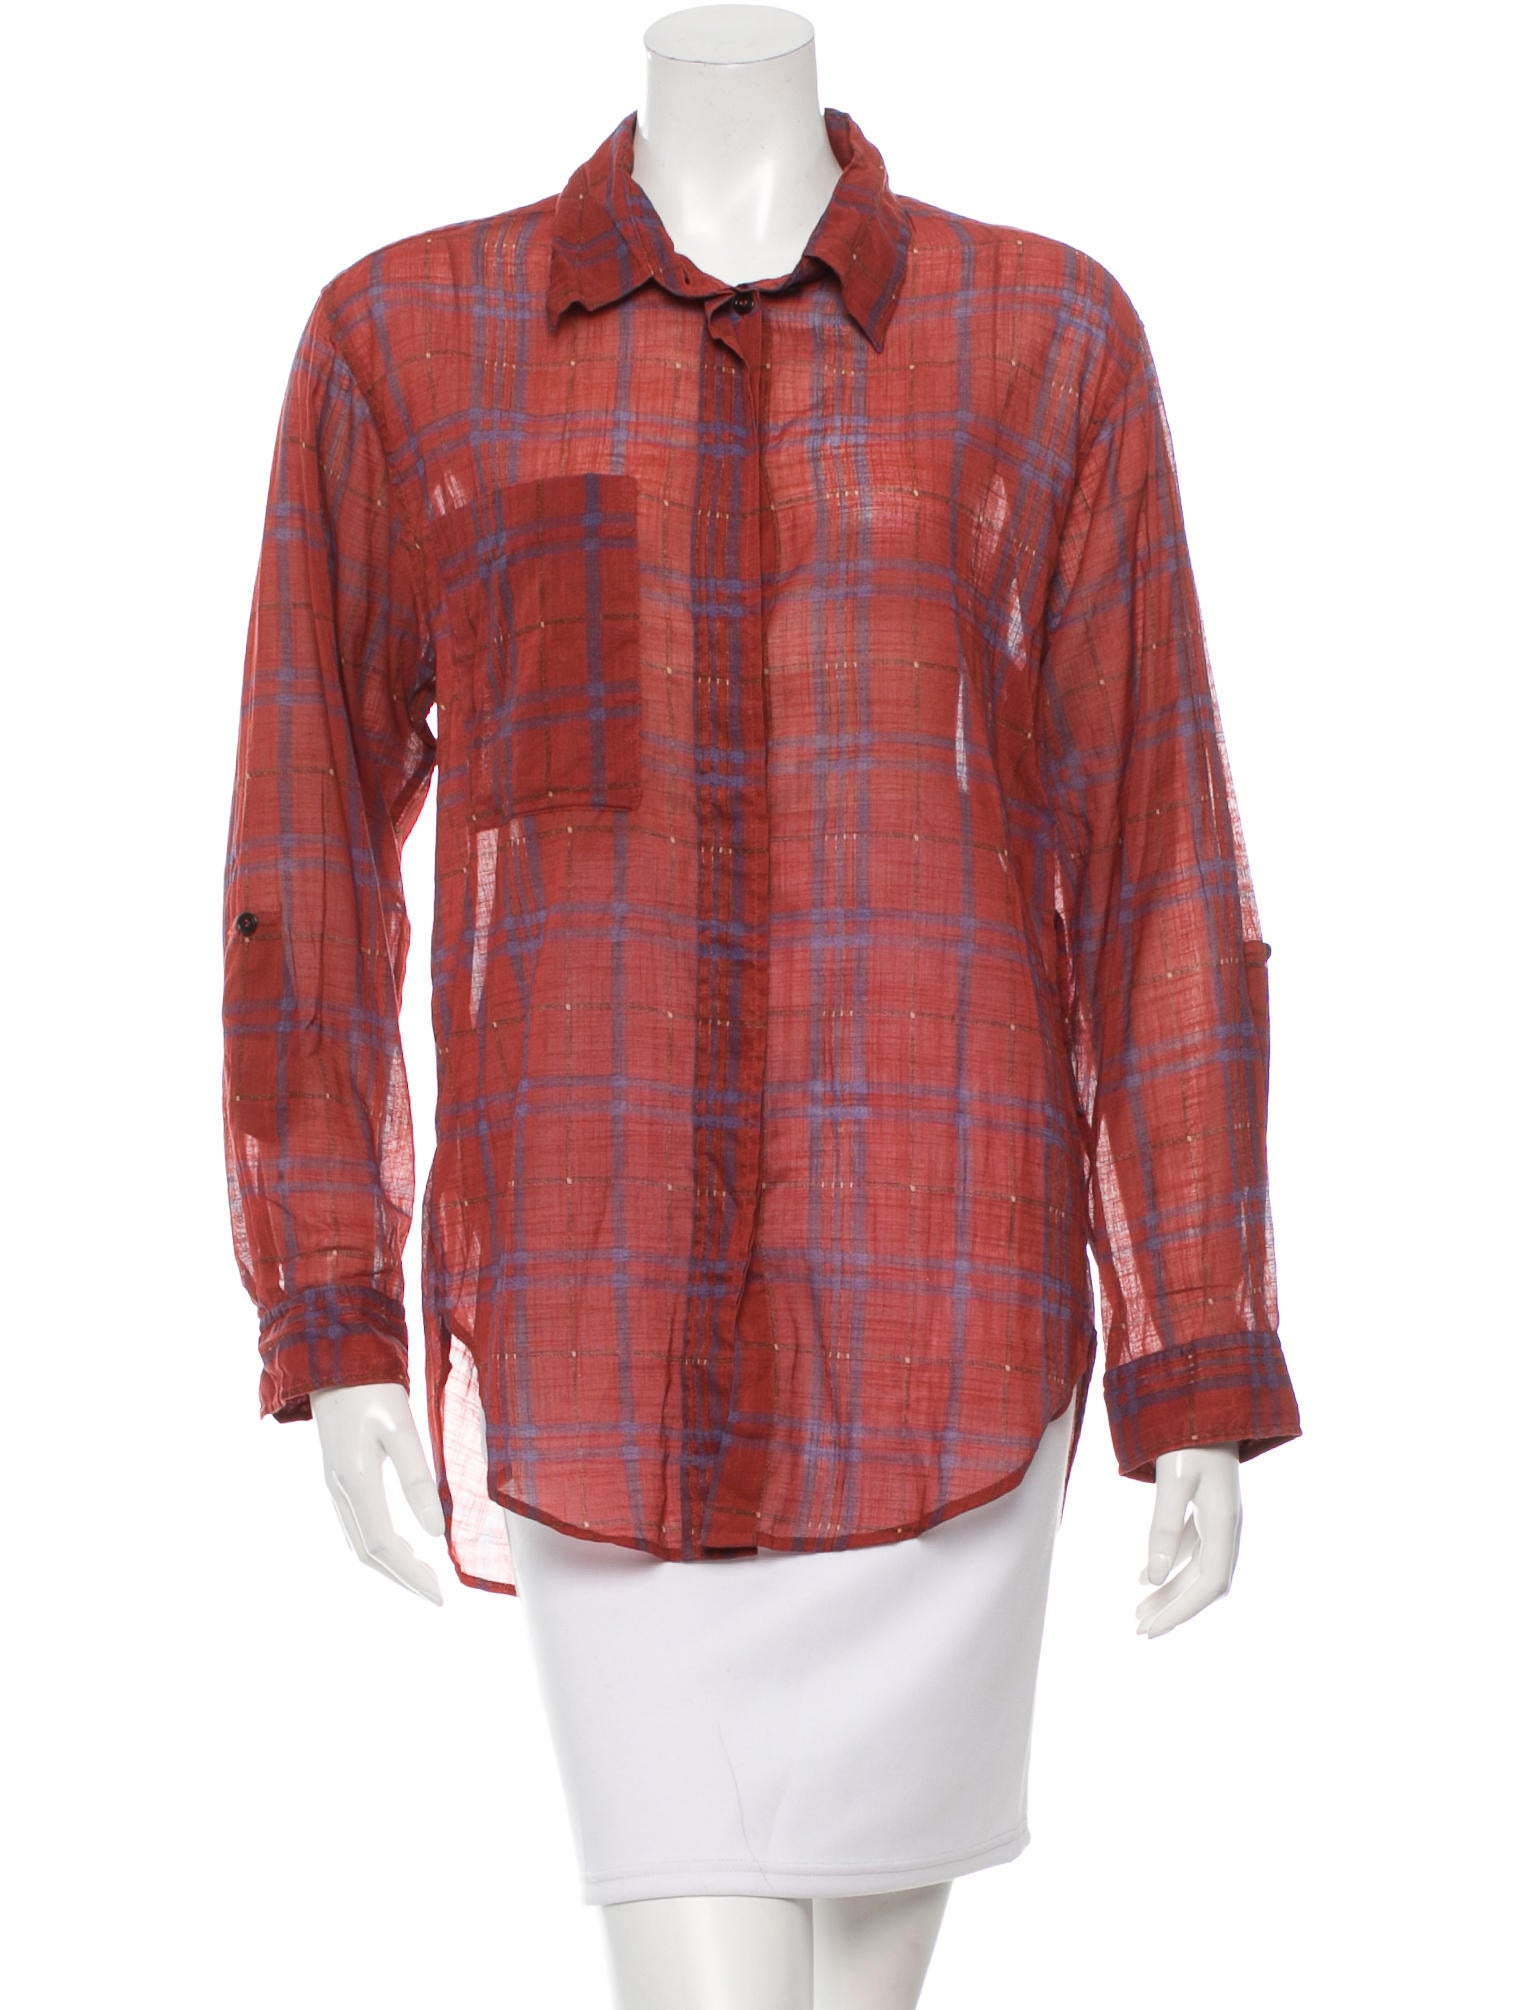 toile isabel marant plaid button up top w tags. Black Bedroom Furniture Sets. Home Design Ideas